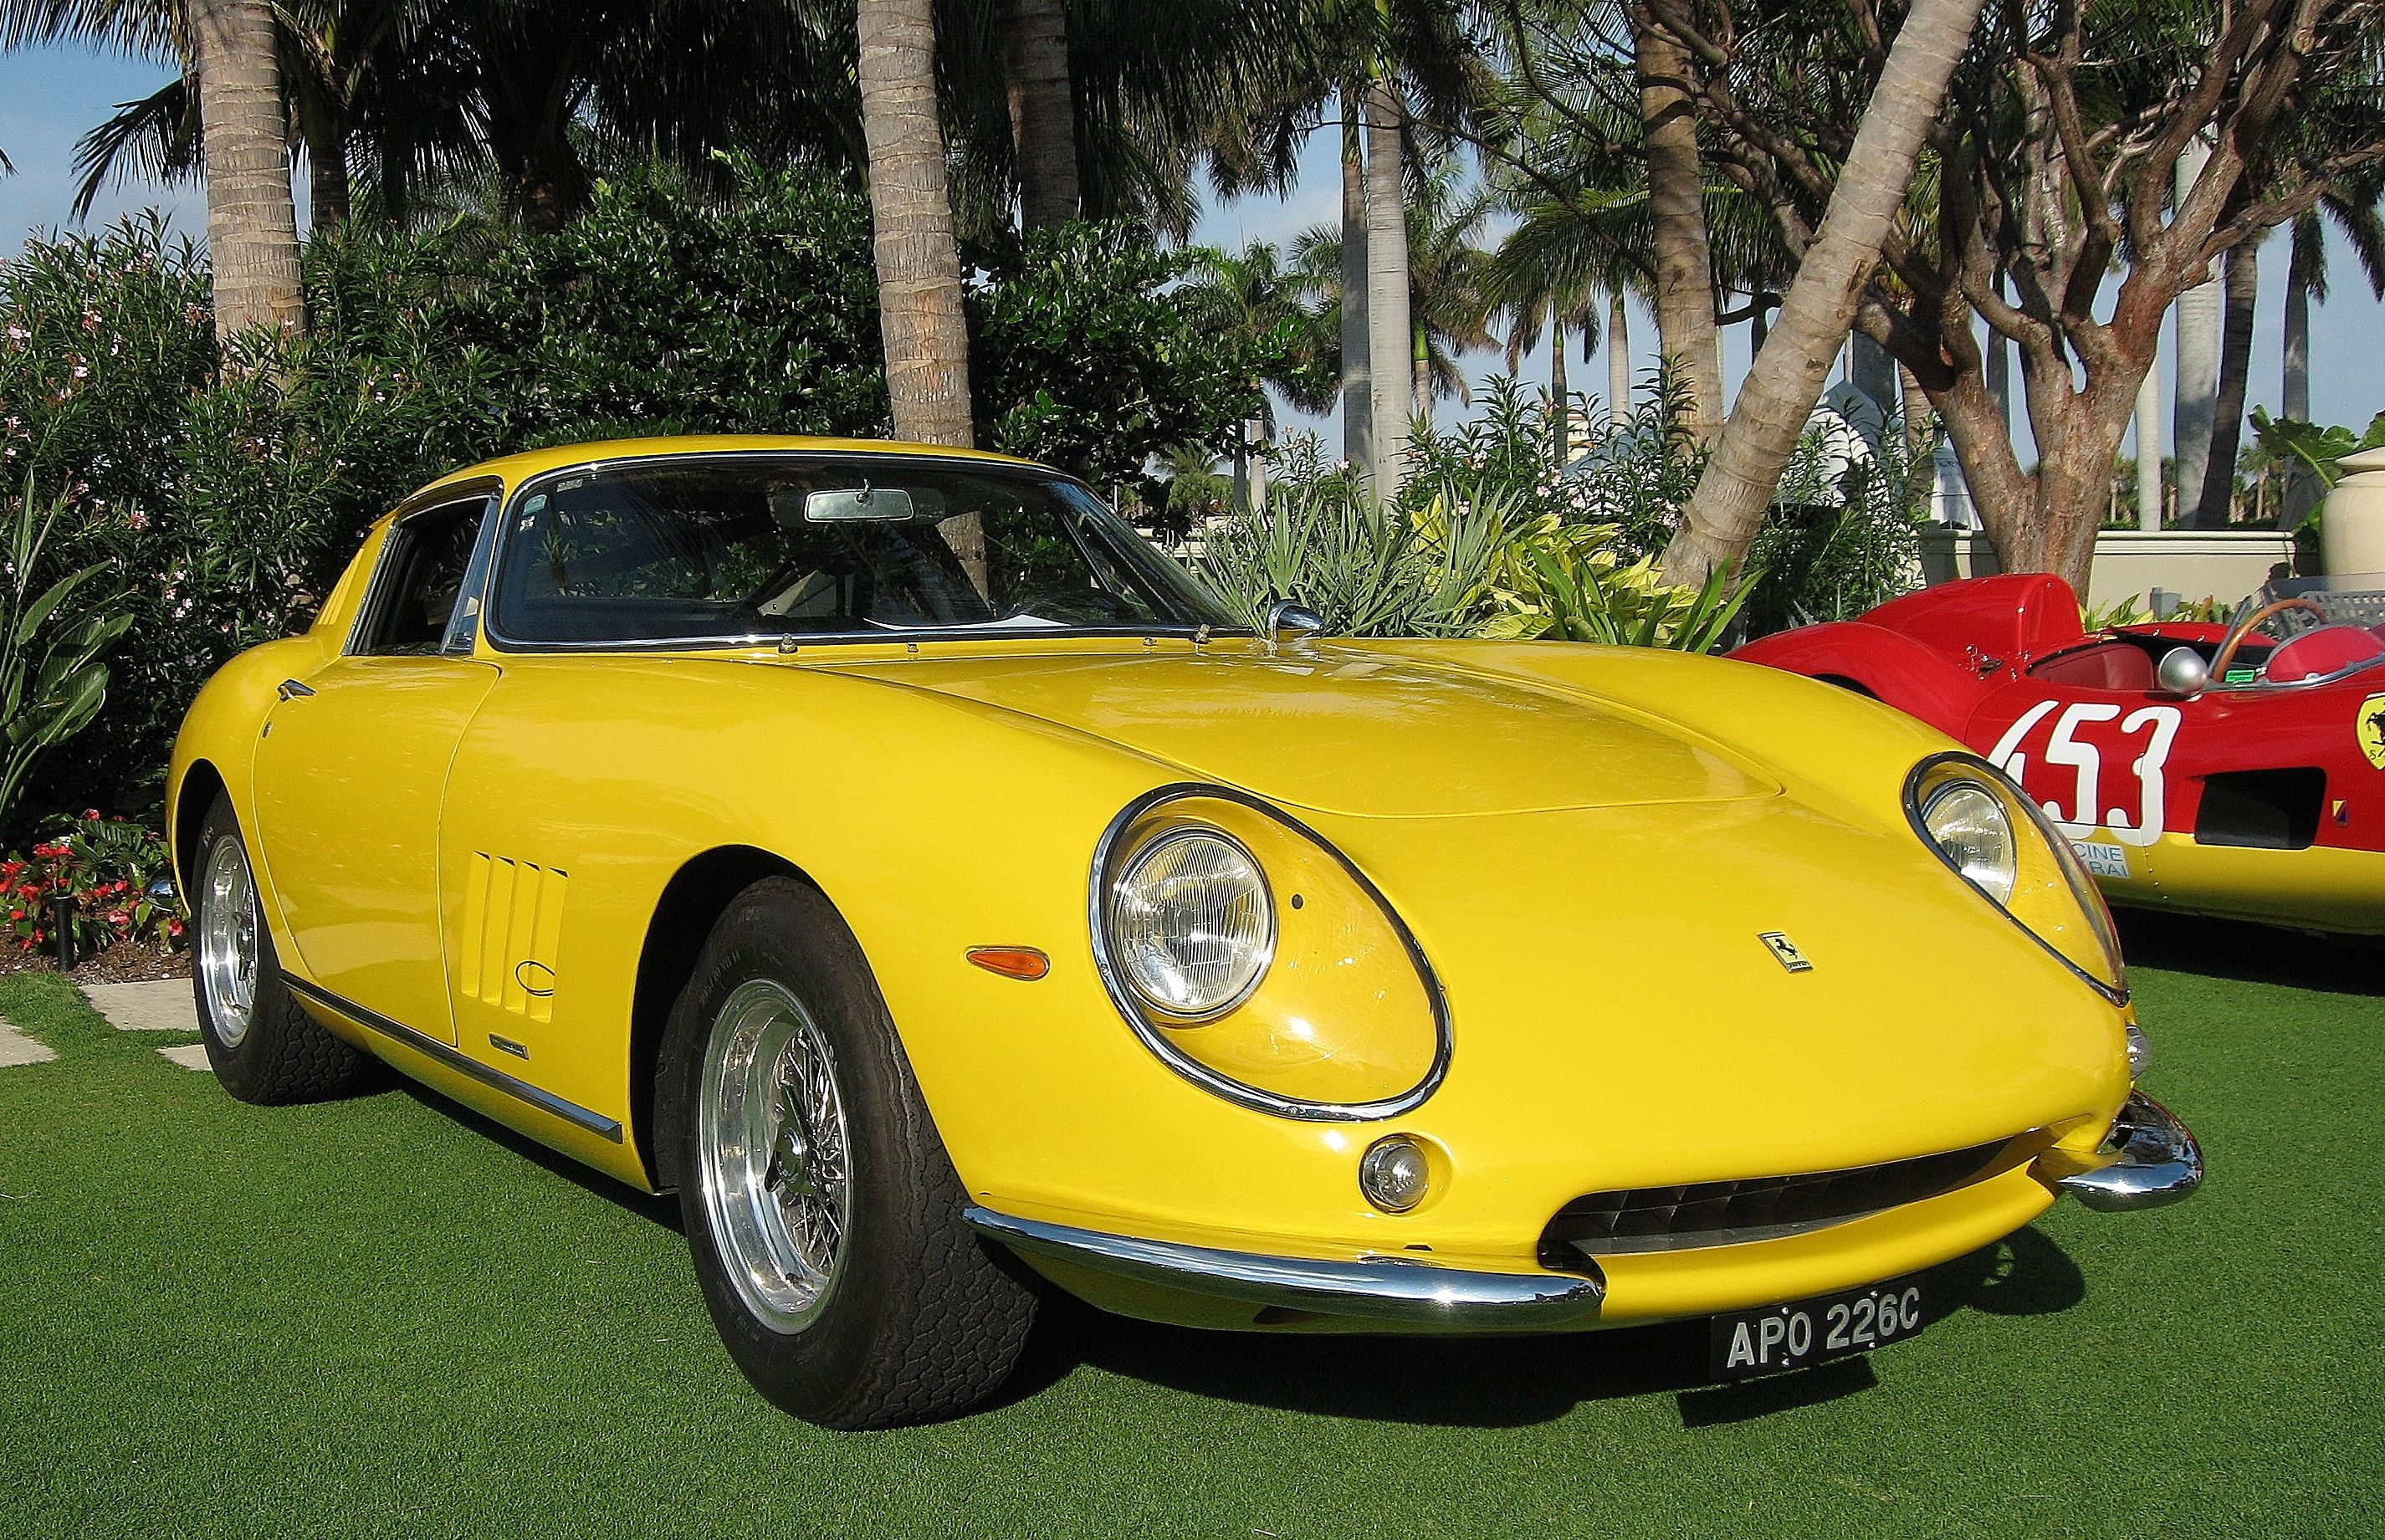 Getting into the spirit for the best ferrari event of the year the palm beach cavallino classic cars from past events